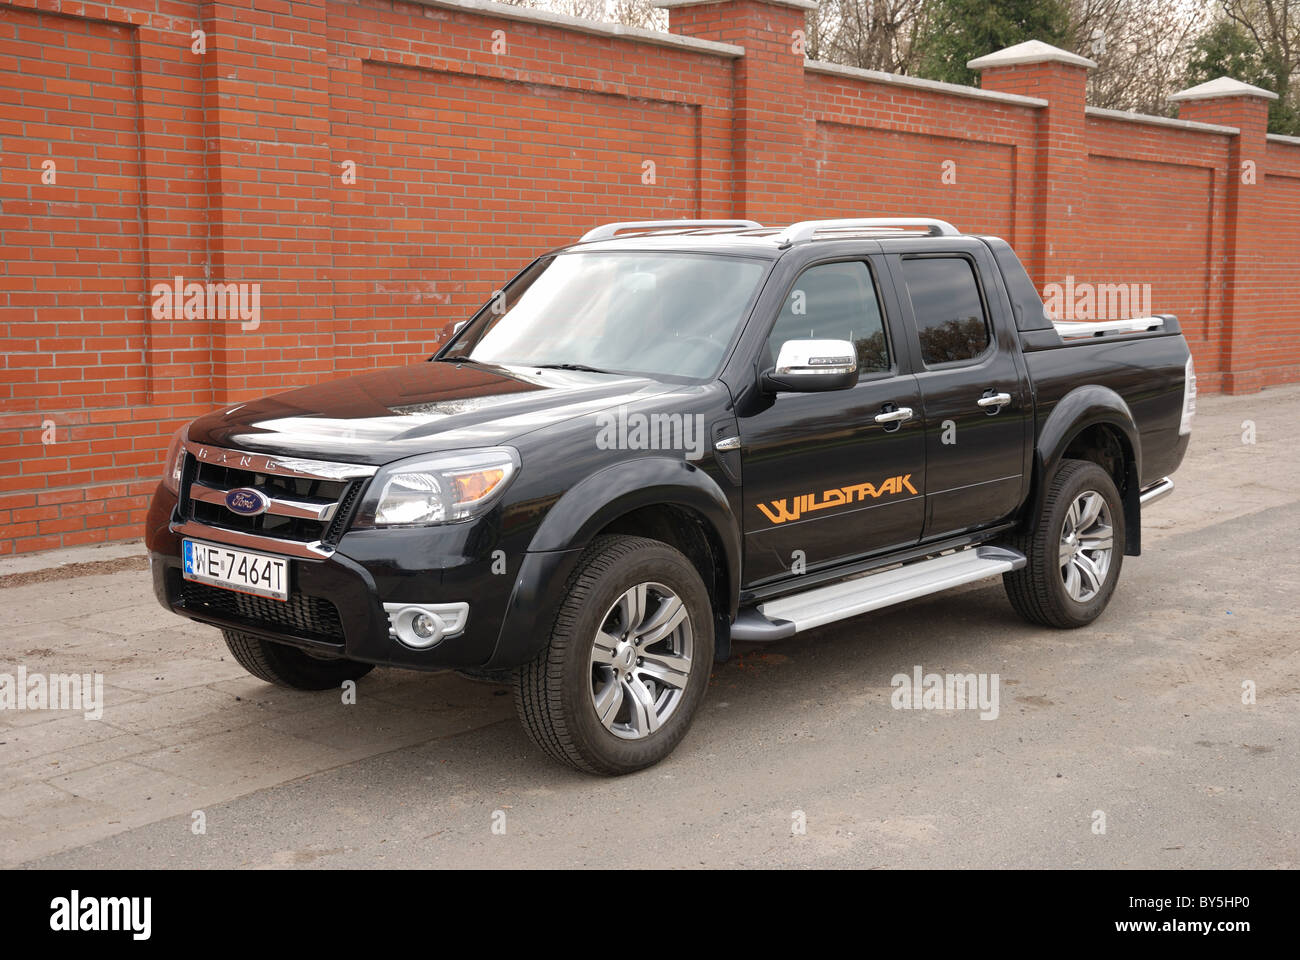 ford ranger 3 0 tdci wildtrak 4x4 my 2010 black metallic double stock photo 33929784 alamy. Black Bedroom Furniture Sets. Home Design Ideas